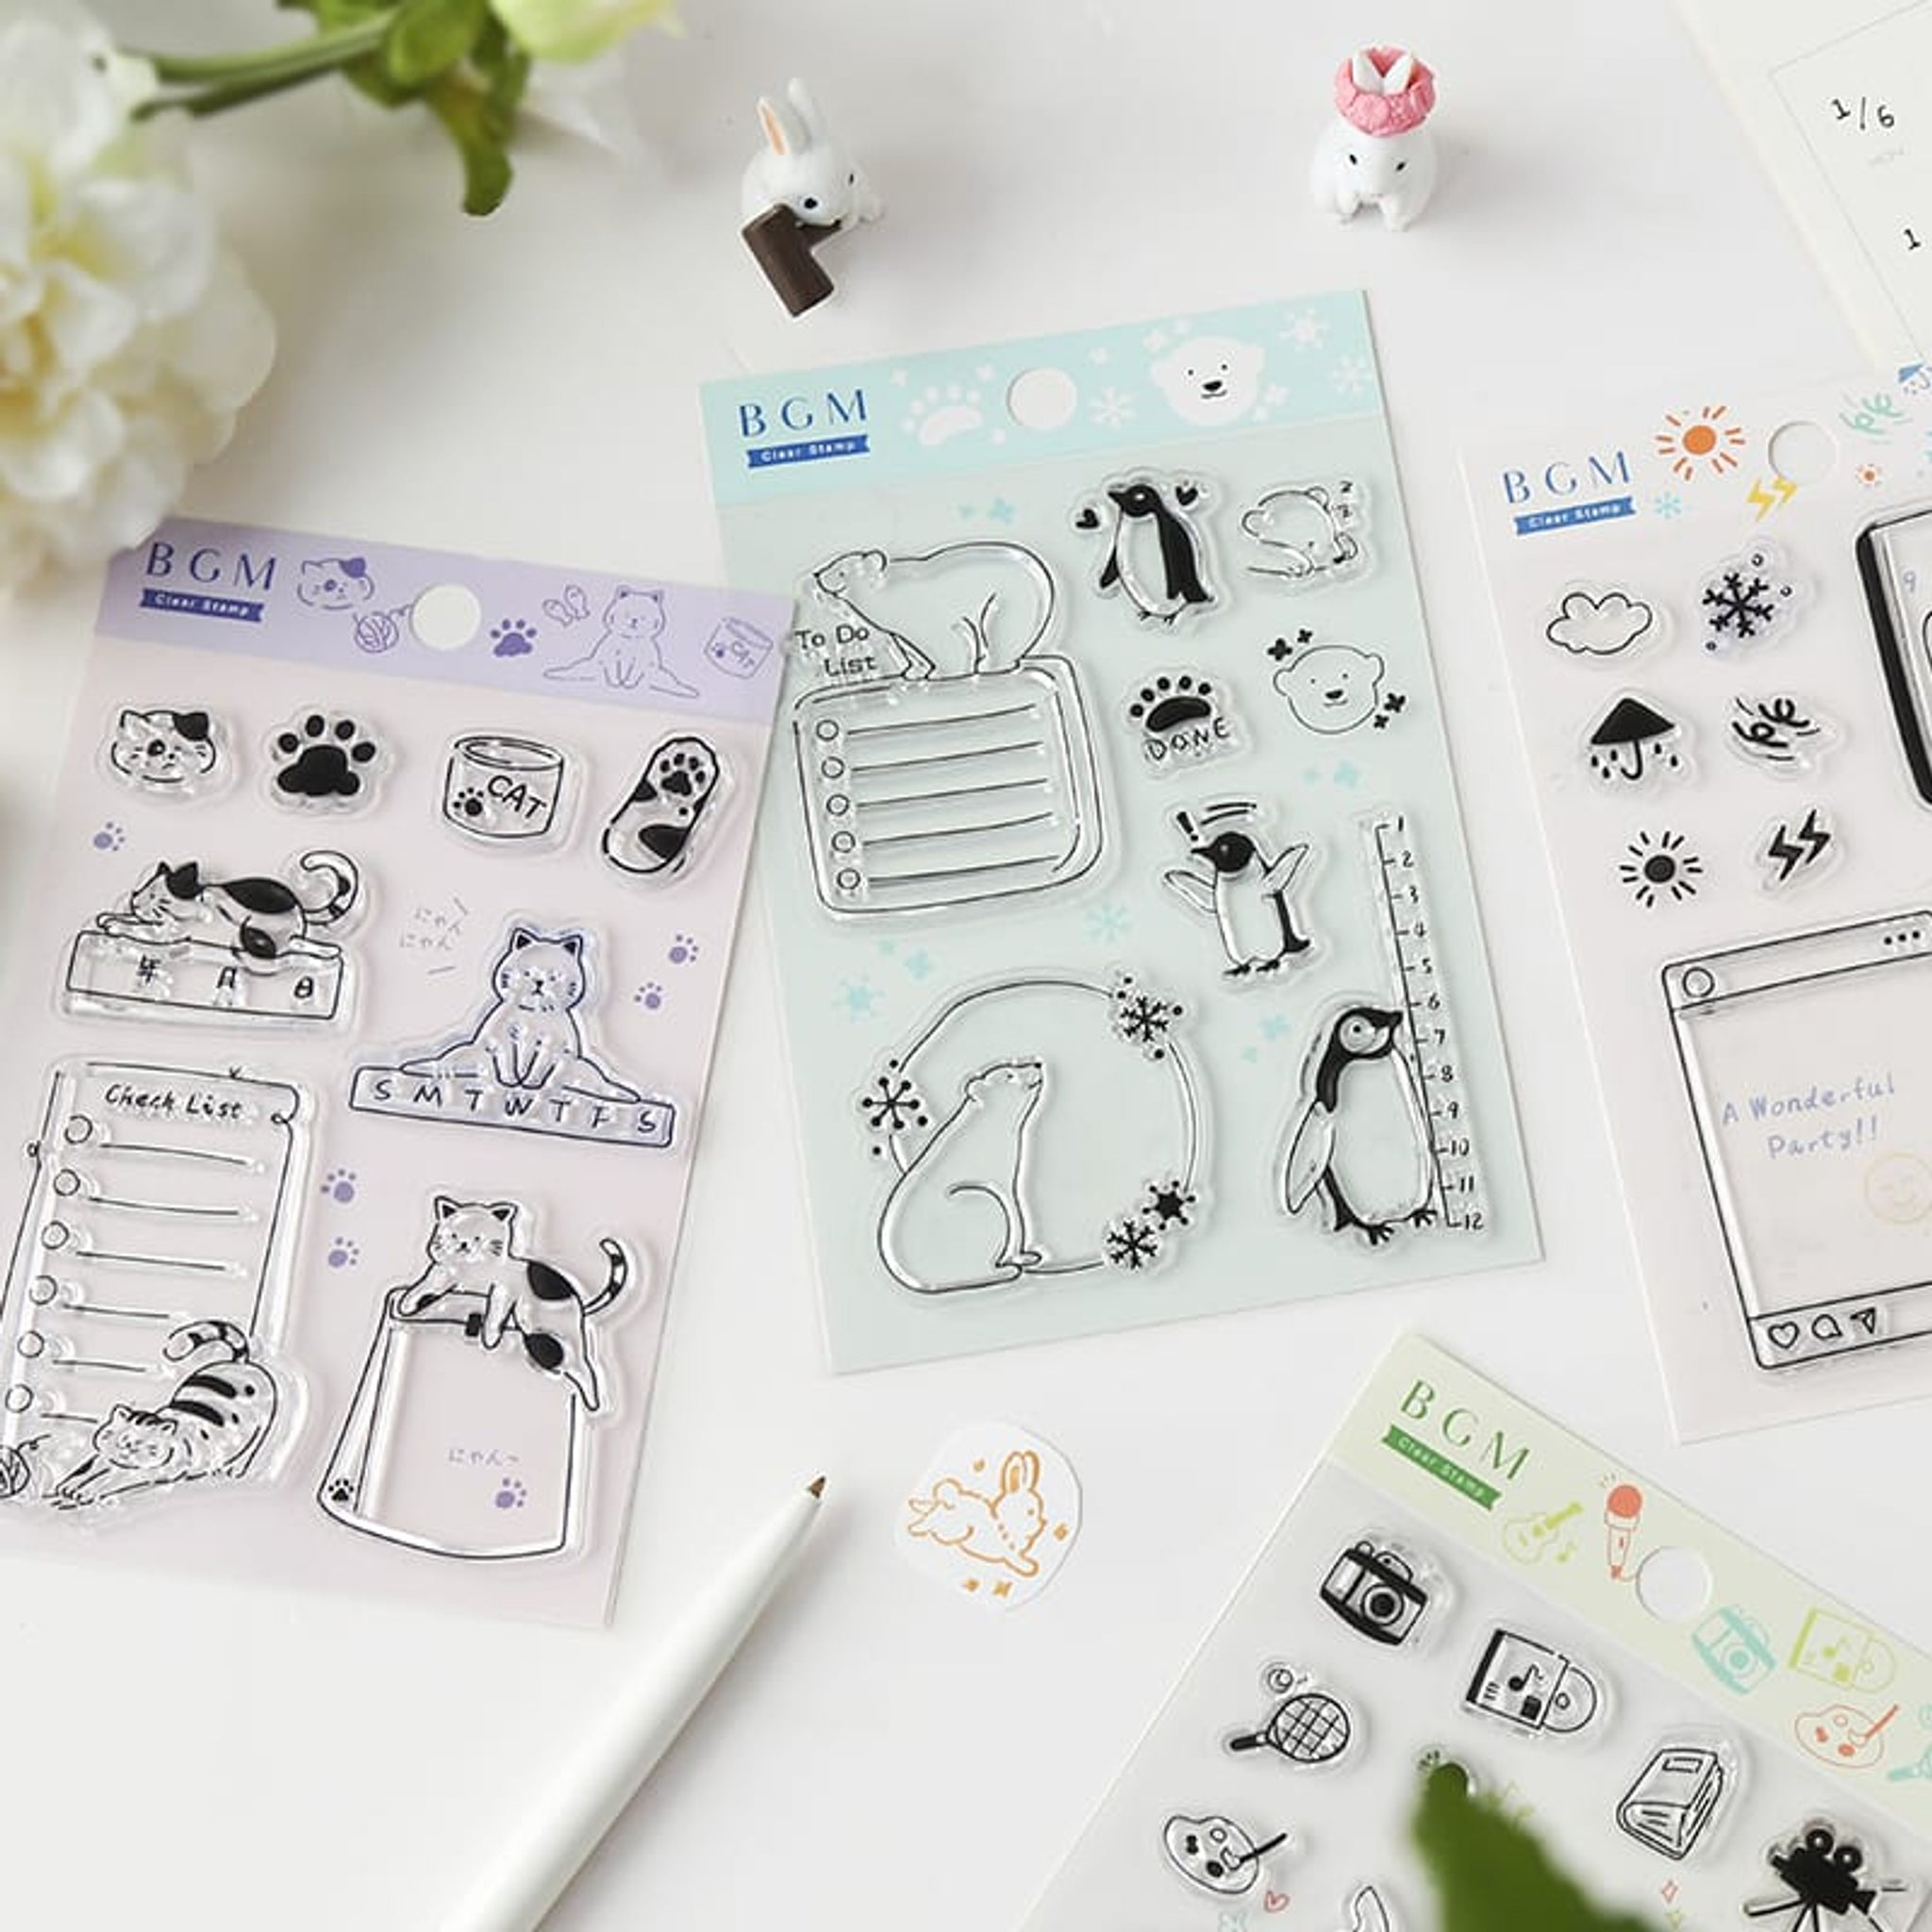 BGM Kirok / And Polar Animals Clear Stamp